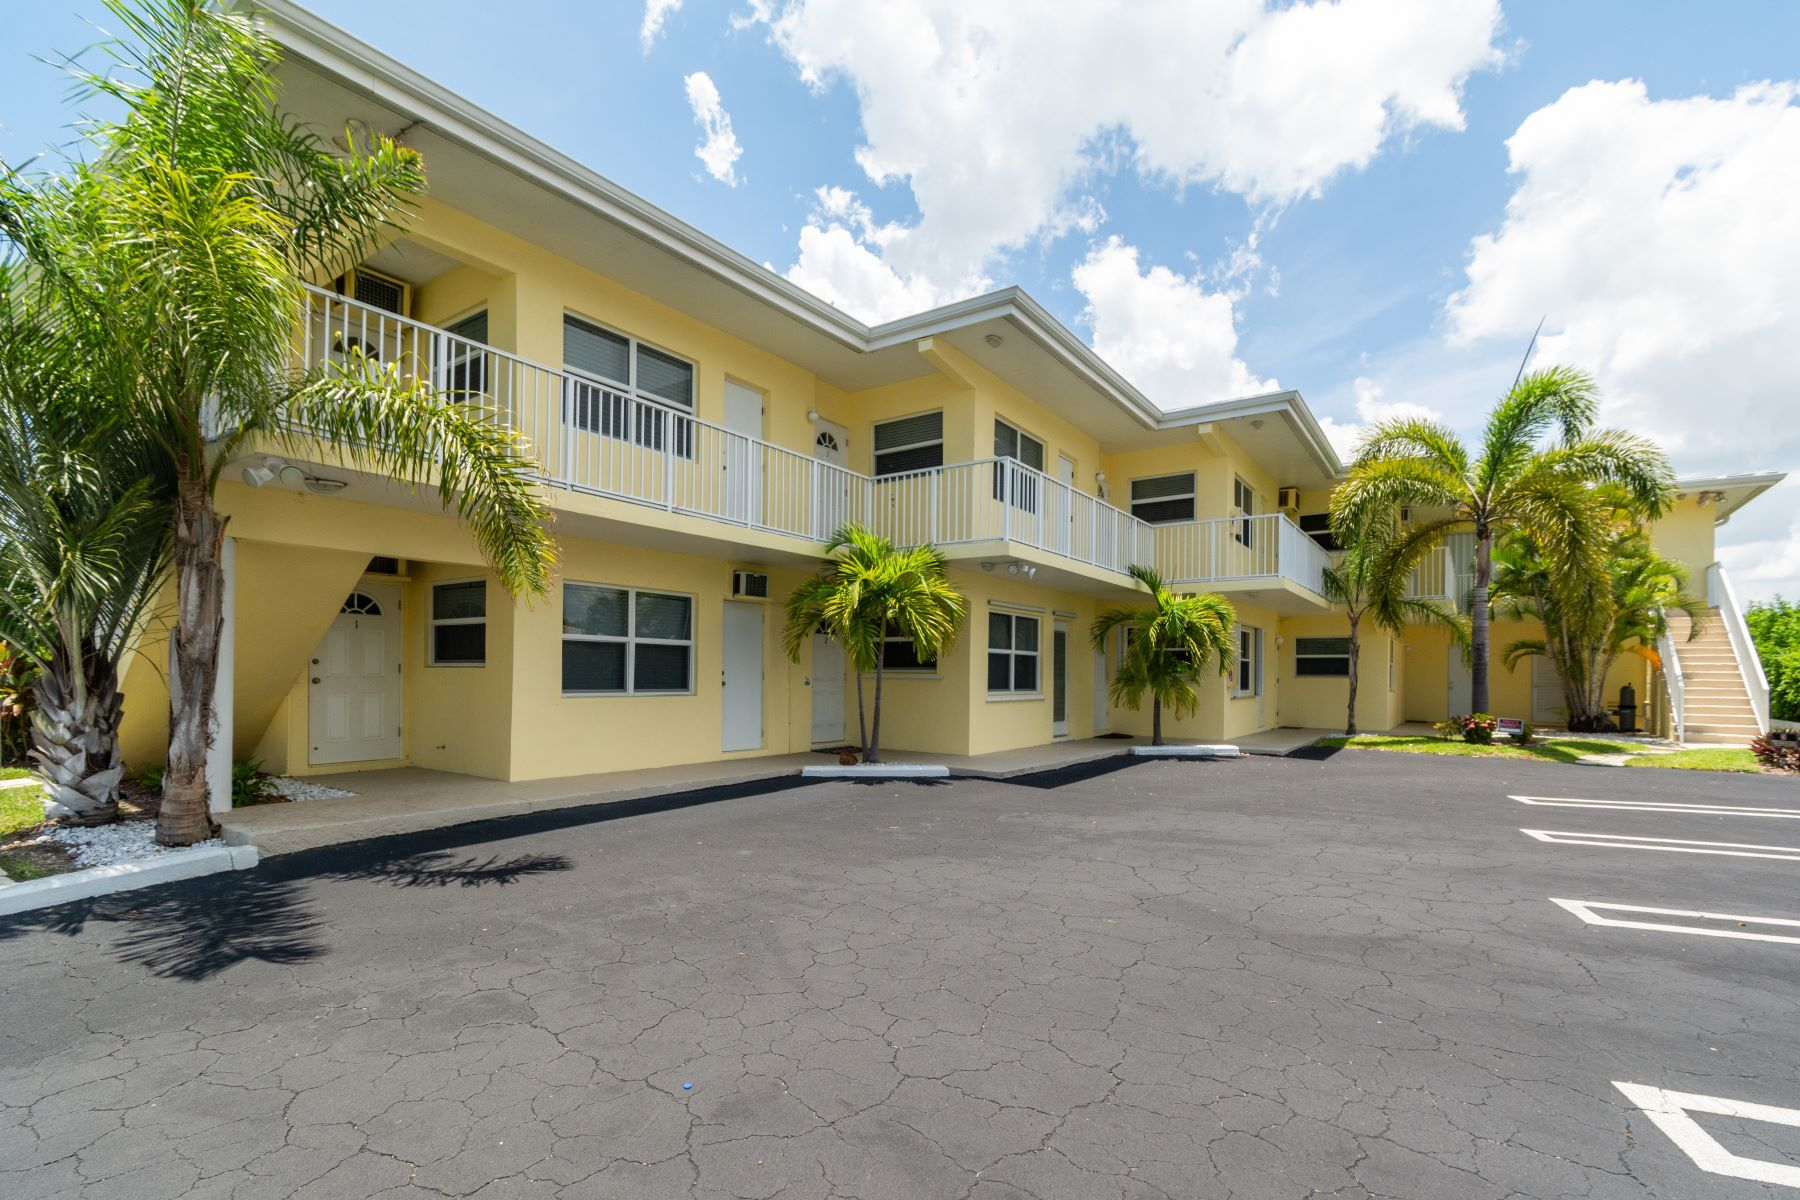 Condominiums for Sale at 615 S Riverside Dr 10, Pompano Beach, Florida 33062 United States